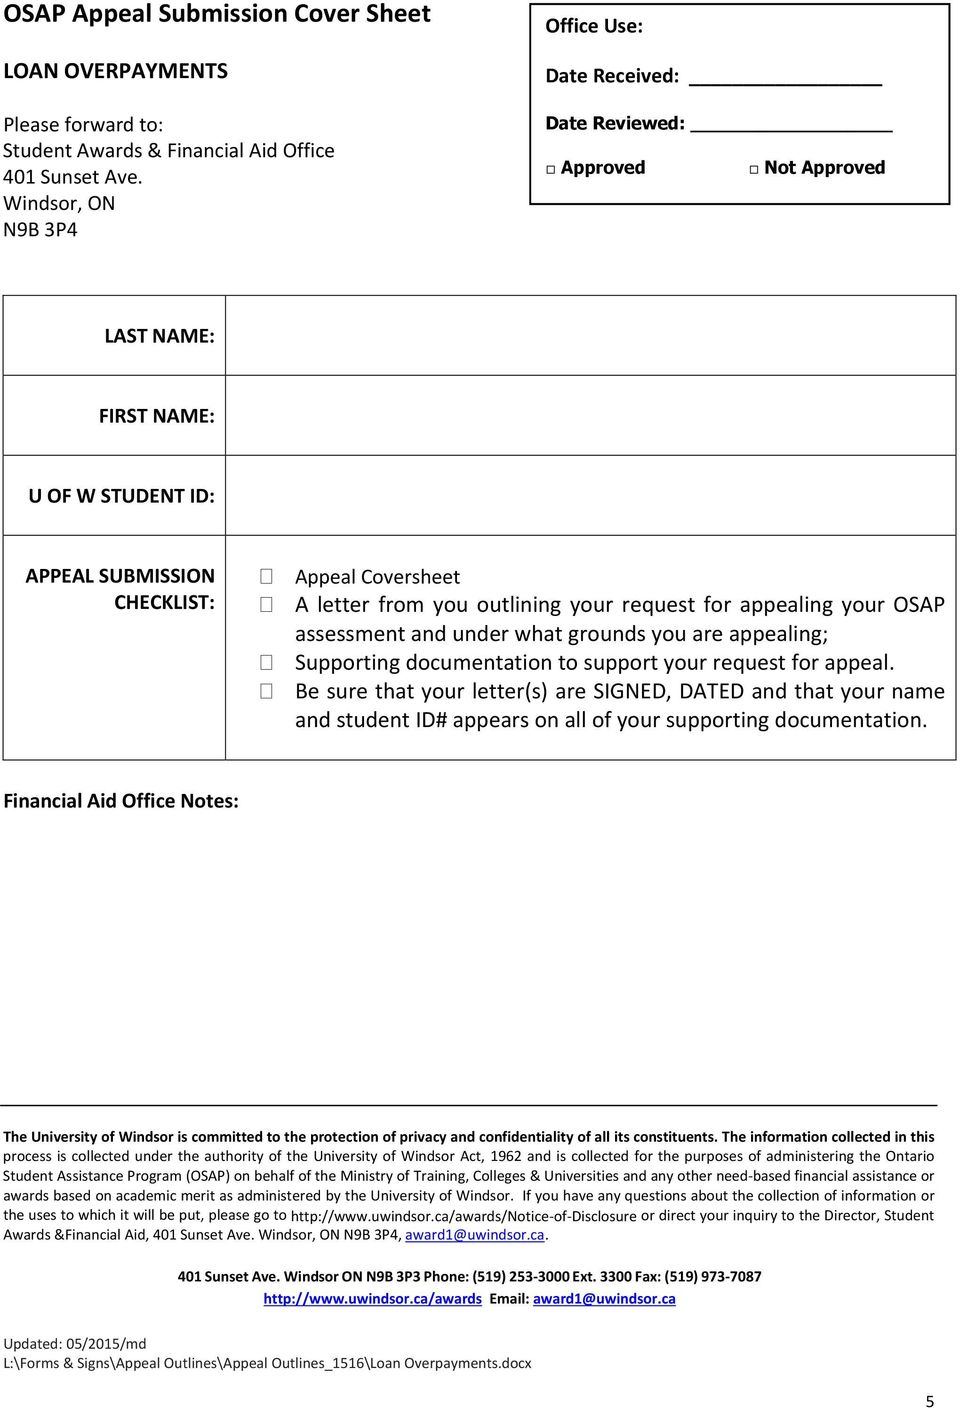 osap letter of appeal example